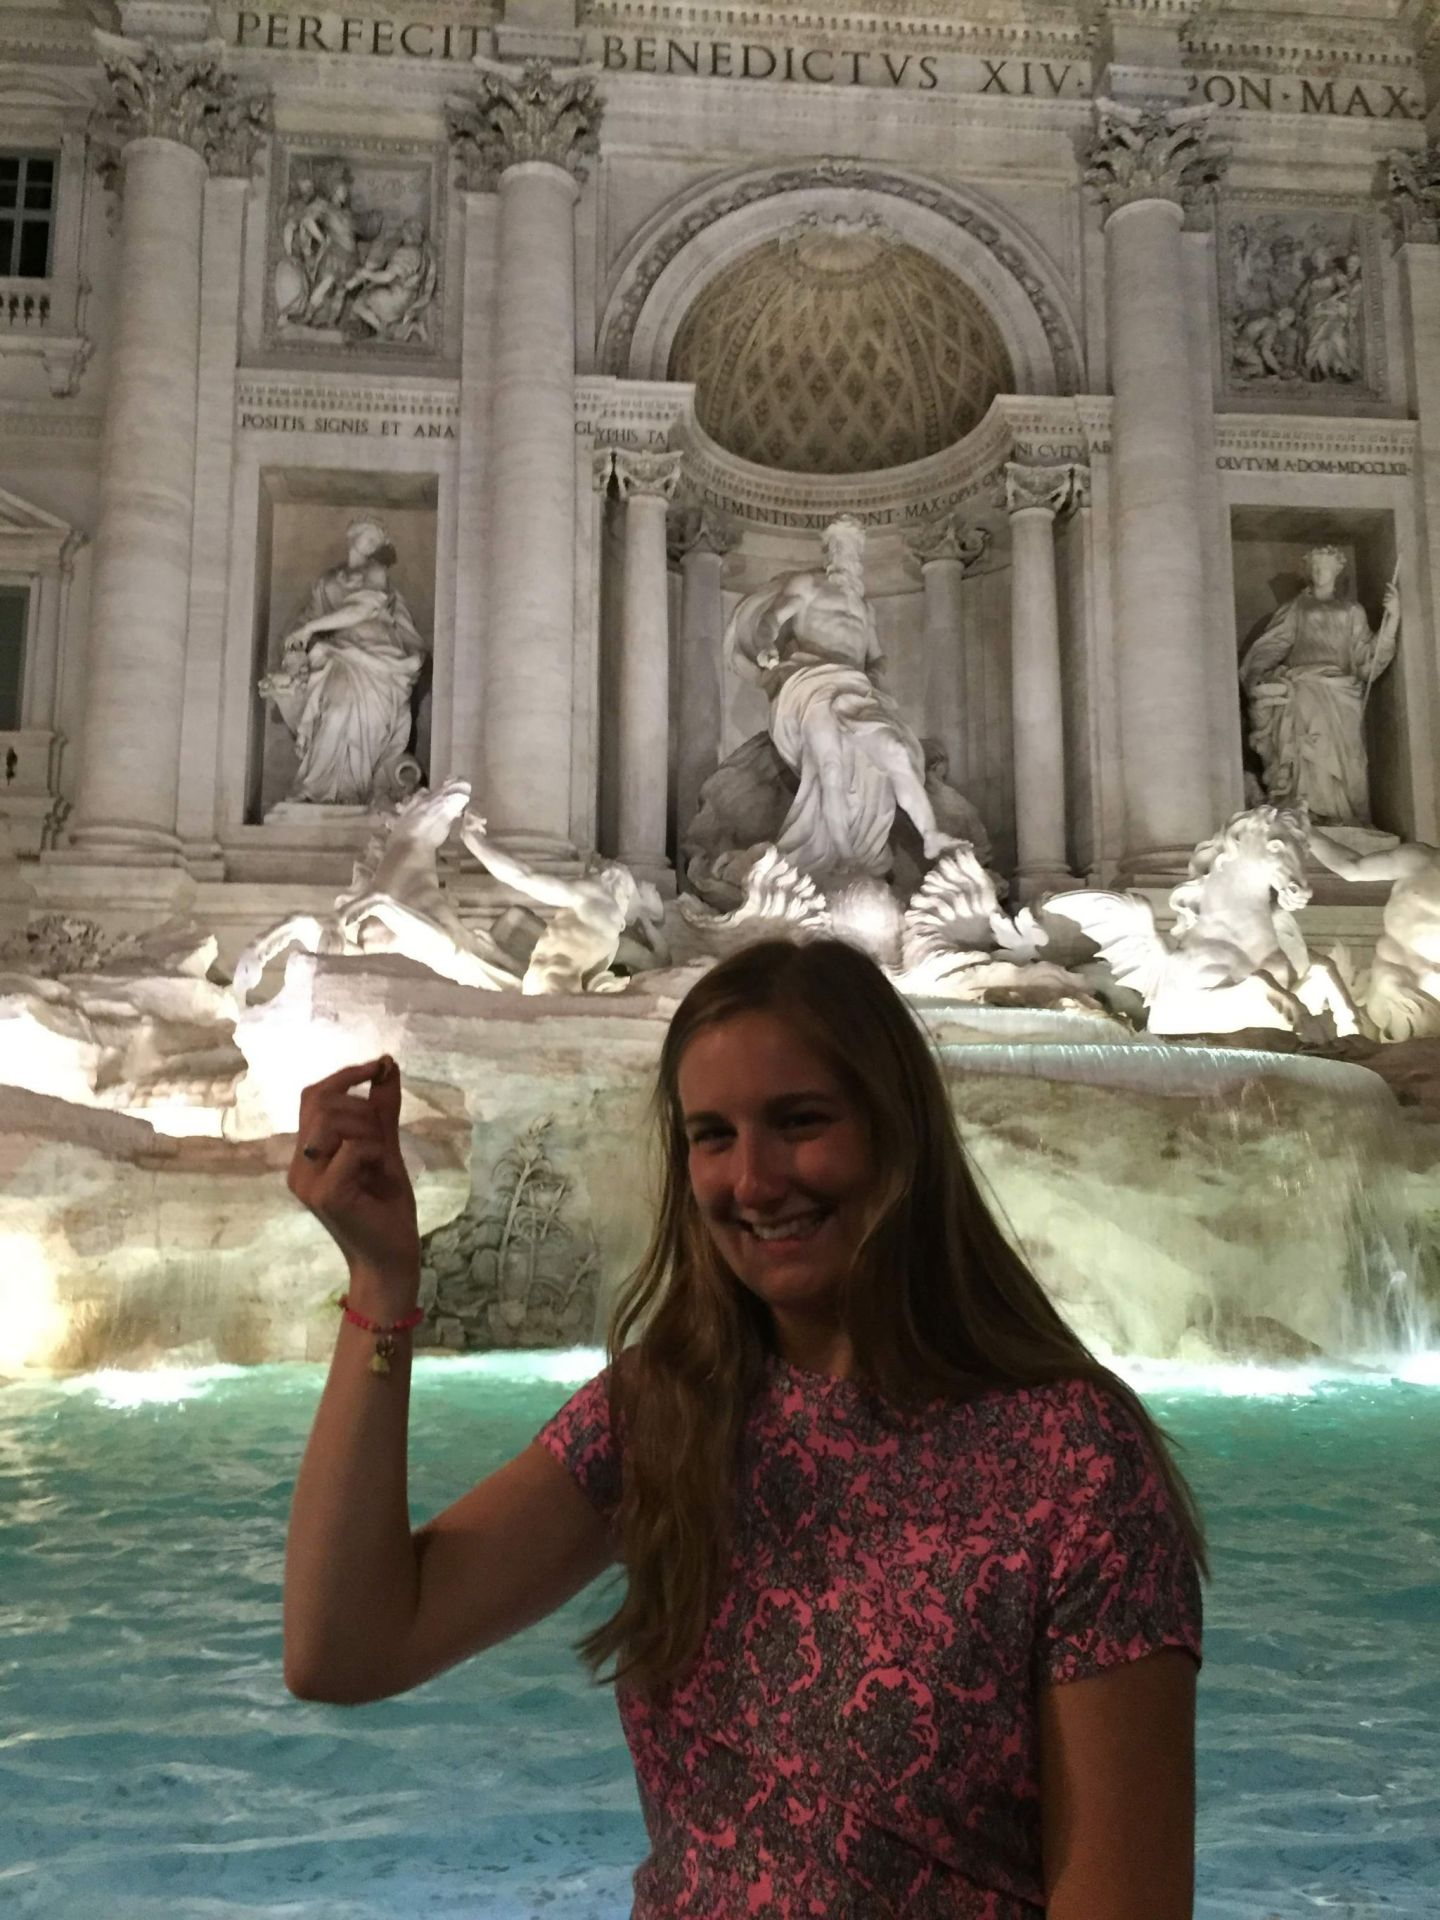 Throwing a coin at the Trevi Fountain, Rome